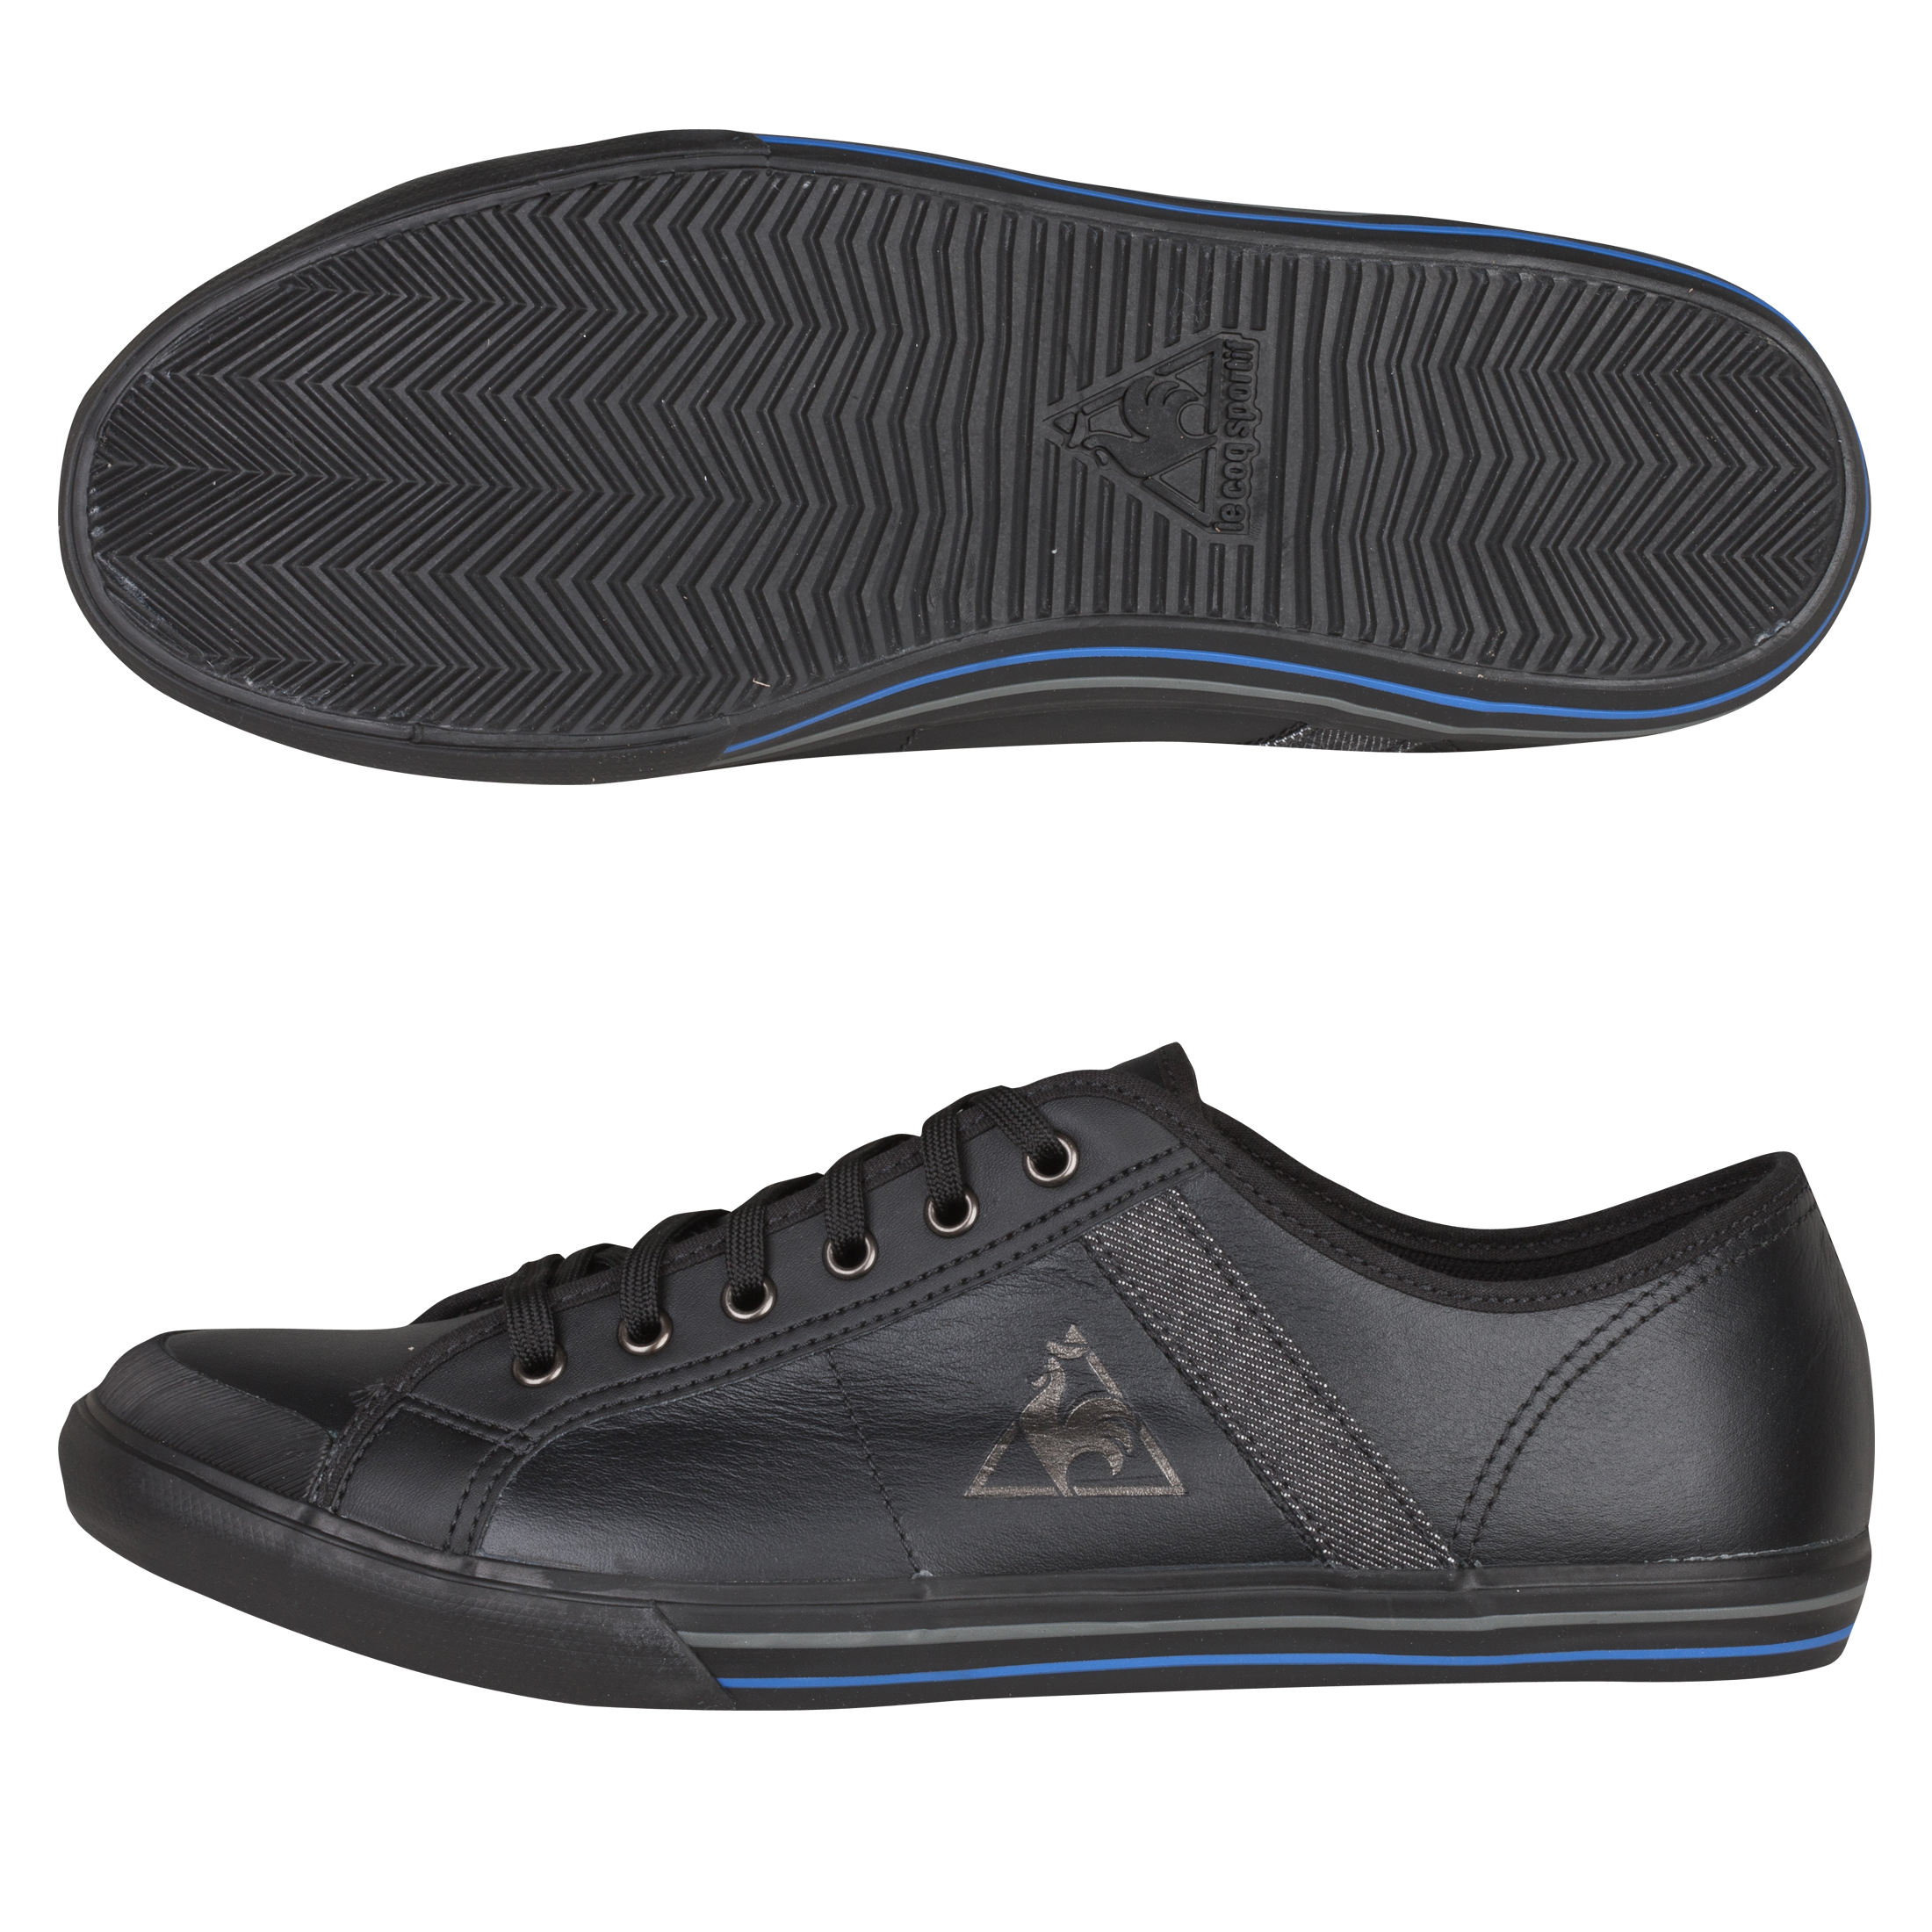 Le Coq Sportif Saint Malo Leather/Denim Trainers - Black